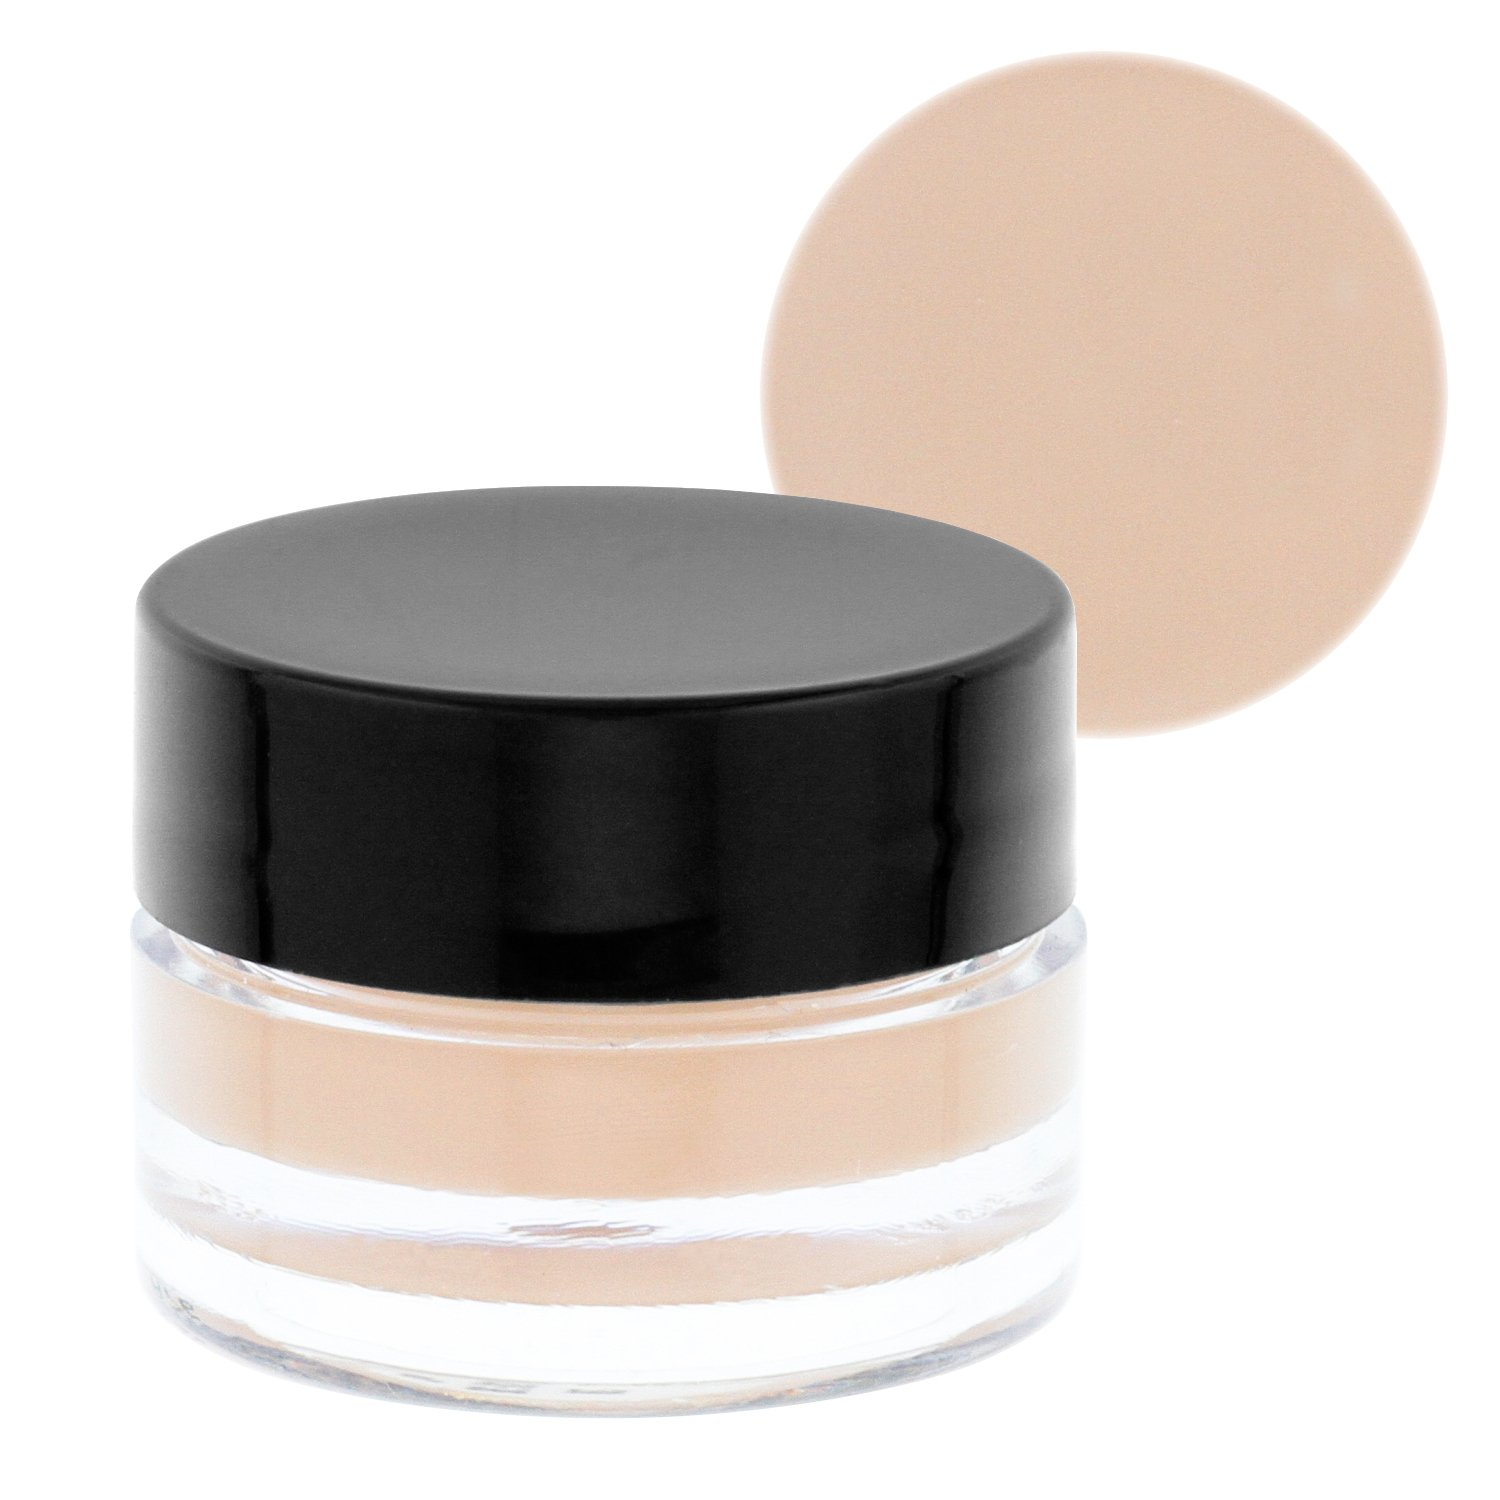 Belloccio High Definition Fair Shade Makeup Concealer 5 gram Jar - Conceal Imperfections, Hide Blemishes, Dark Under Eye Circles, Cosmetic Cream - Use Under Airbrush Foundation